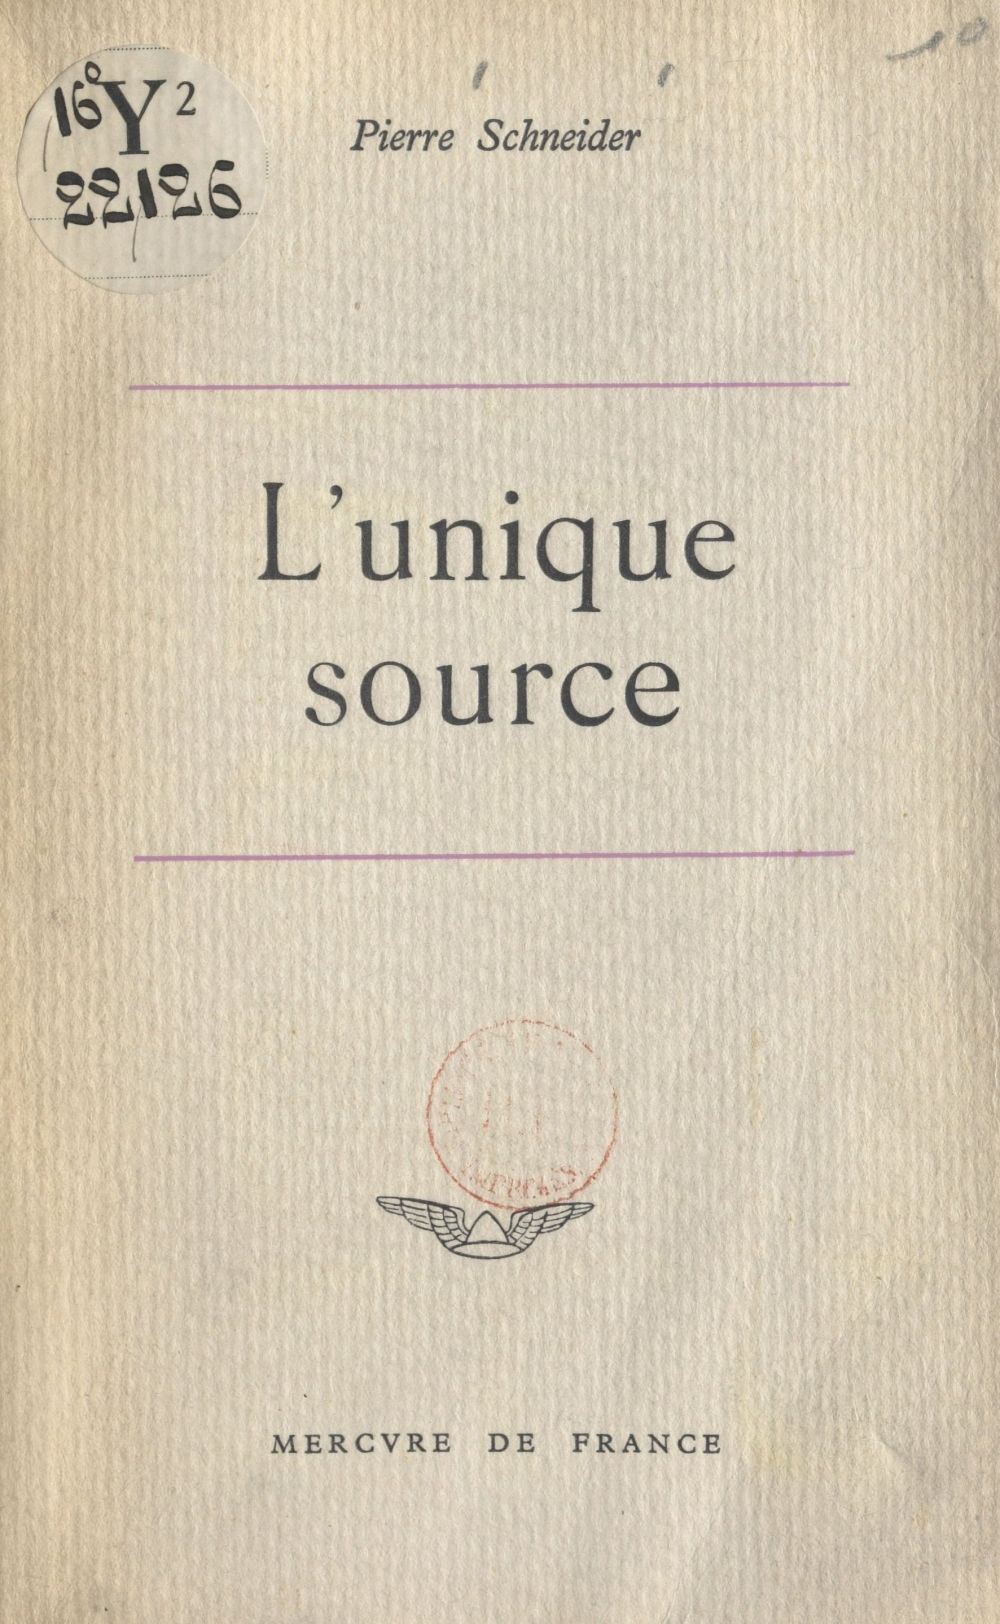 L'unique source